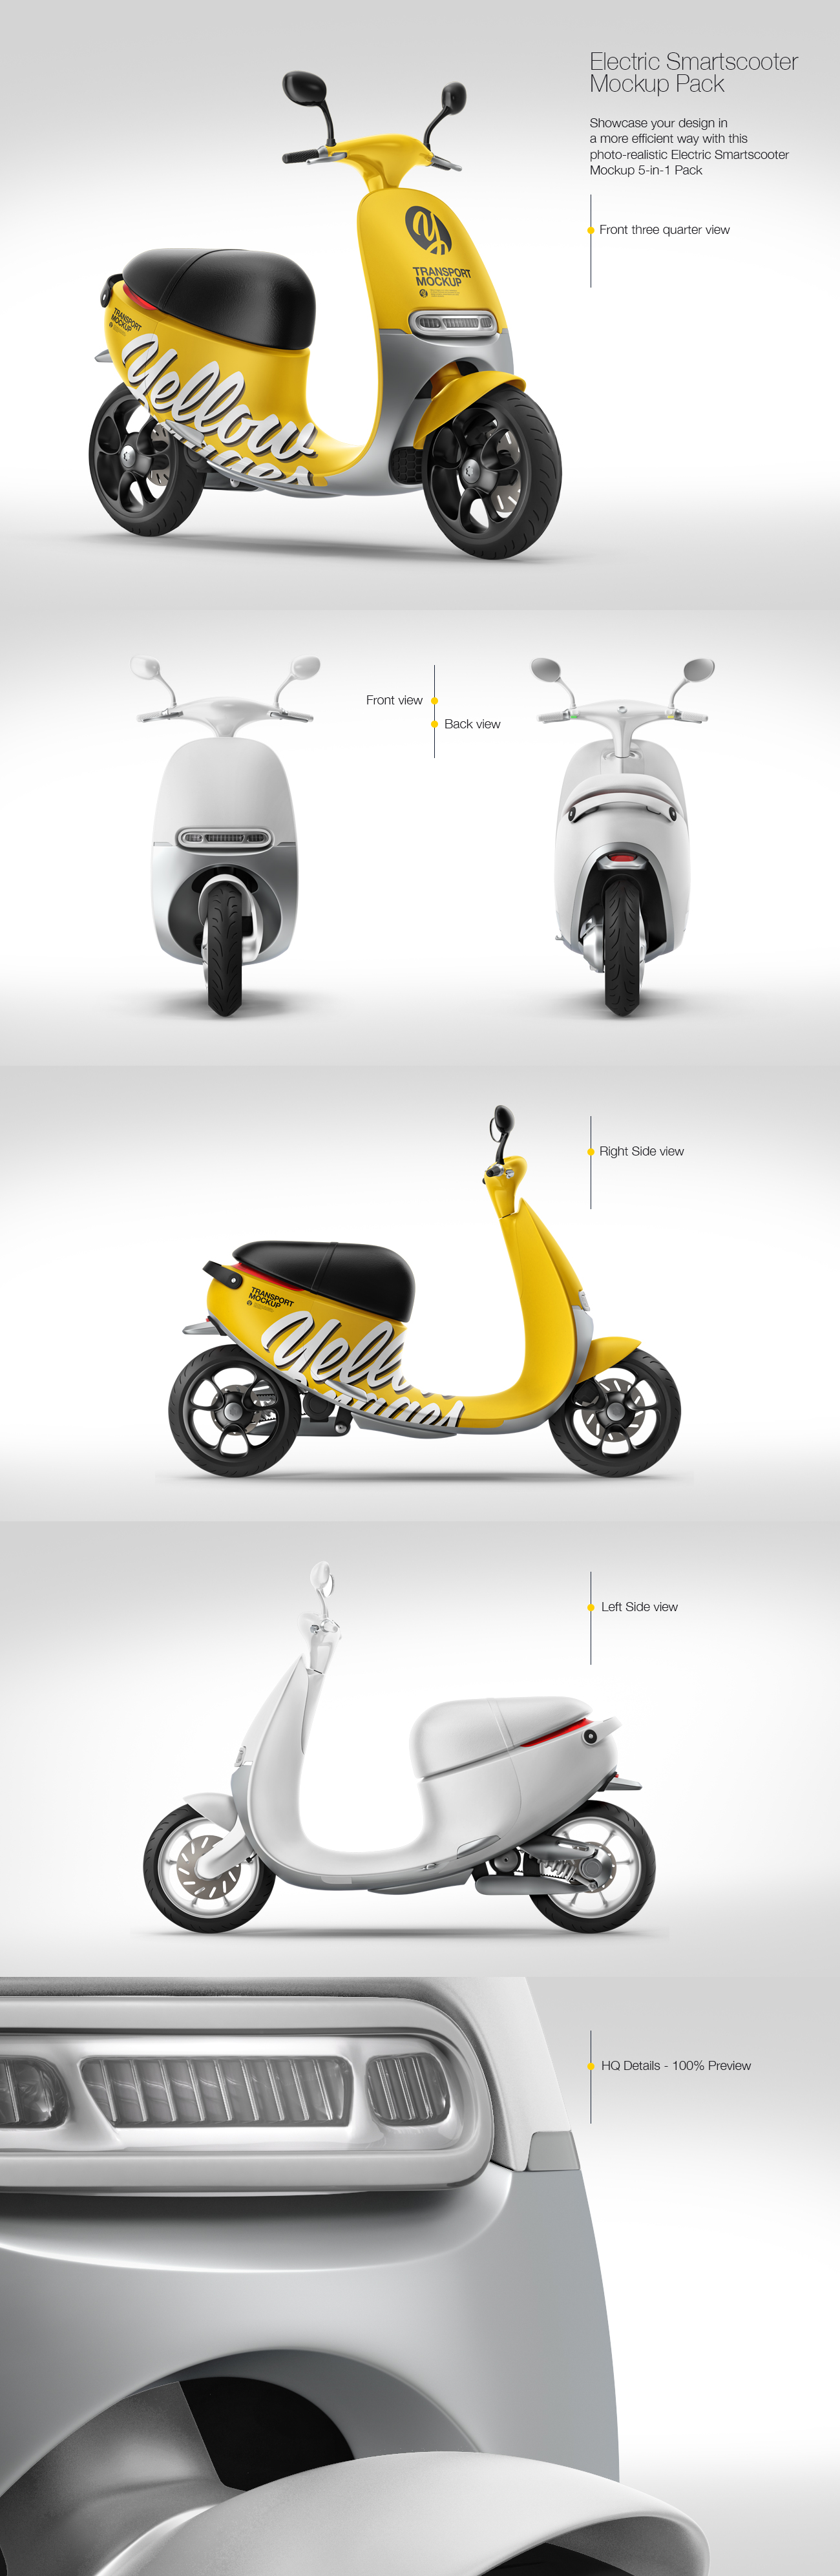 Electric Smartscooter Mockup Pack